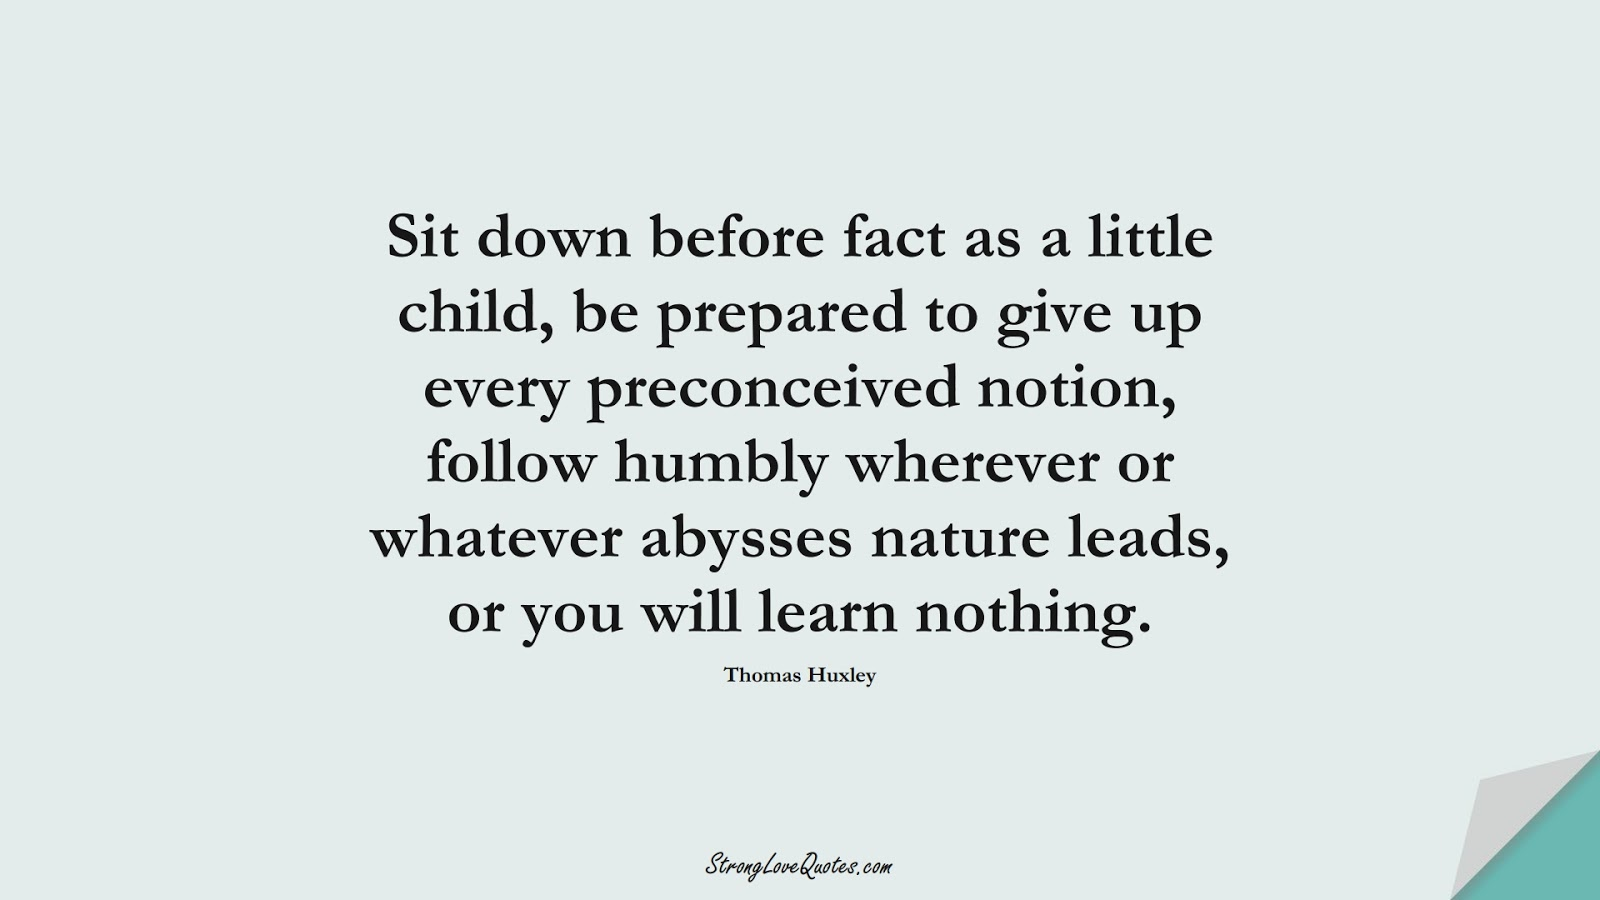 Sit down before fact as a little child, be prepared to give up every preconceived notion, follow humbly wherever or whatever abysses nature leads, or you will learn nothing. (Thomas Huxley);  #LearningQuotes